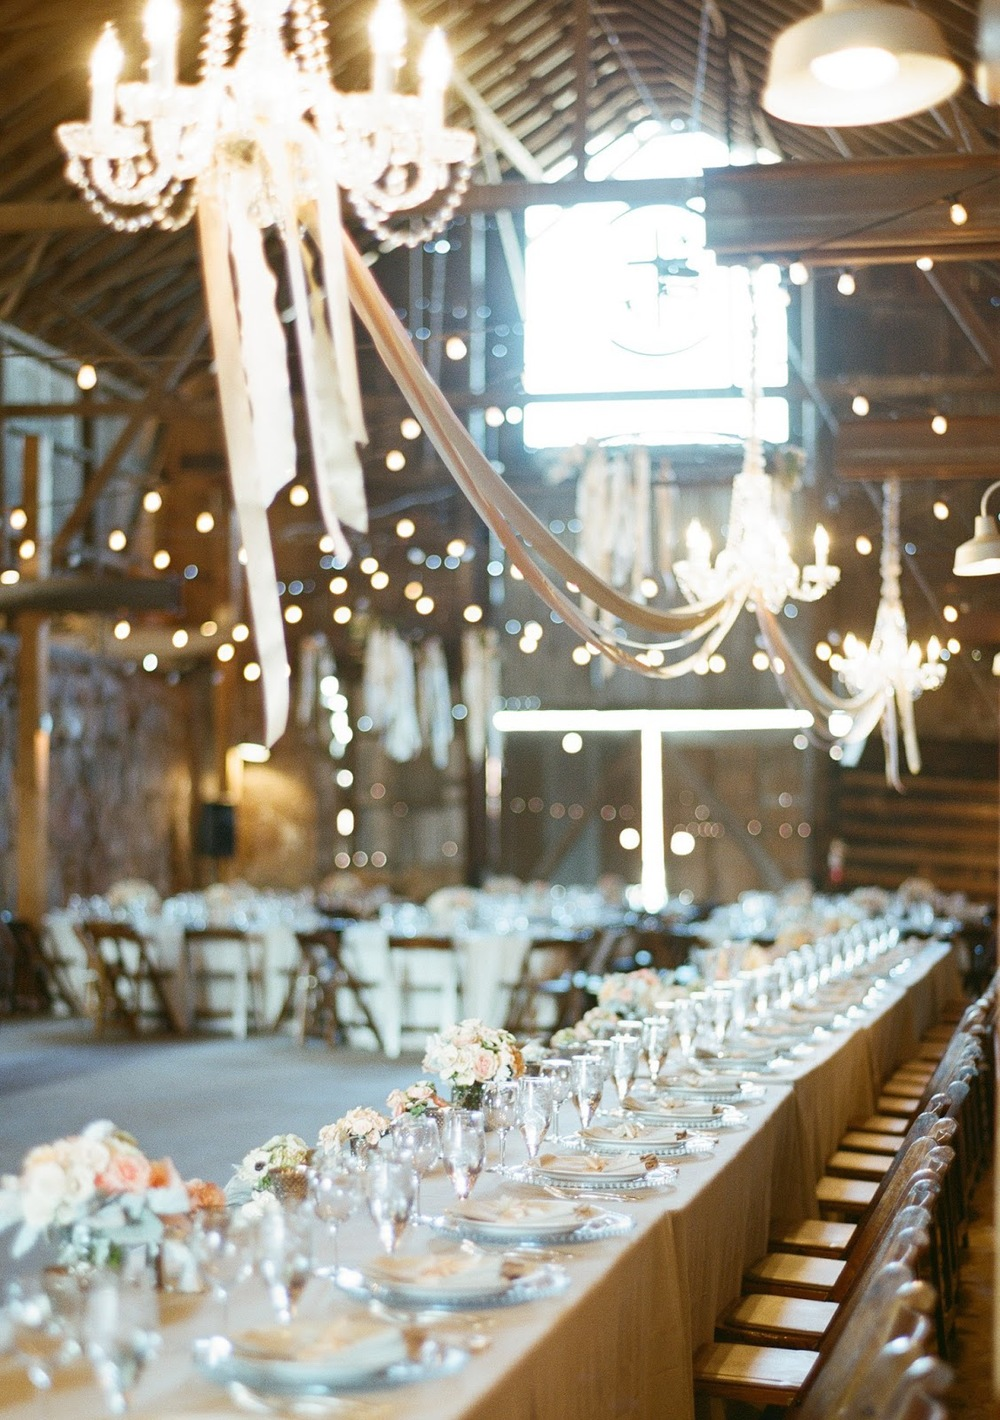 sylvie-gil-film-photography-wedding-santa-margarita-ranch-long-wooden-table-chandelier-flowers